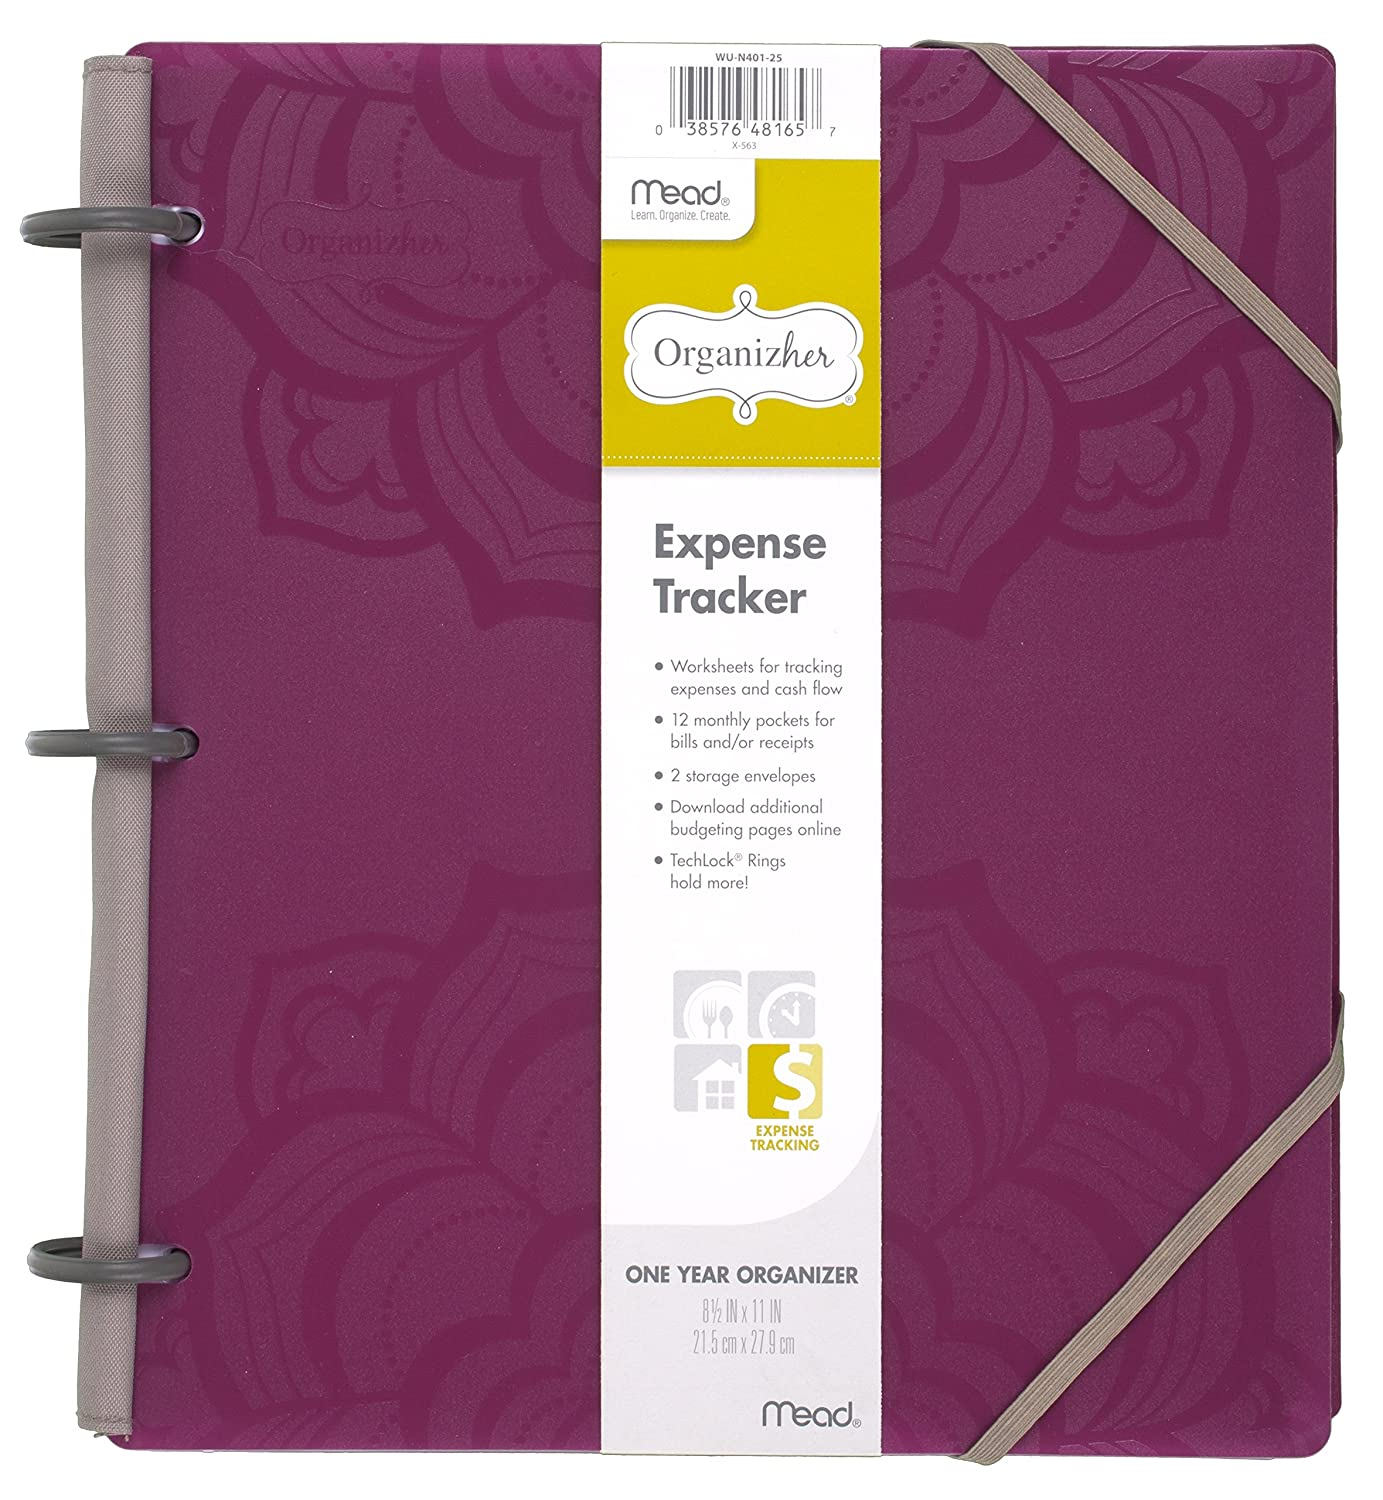 Worksheets Expense Tracker Worksheet amazon com mead organizher expense tracker budget planner bill organizer 8 12 x 11 poly purple 64047 personal orga